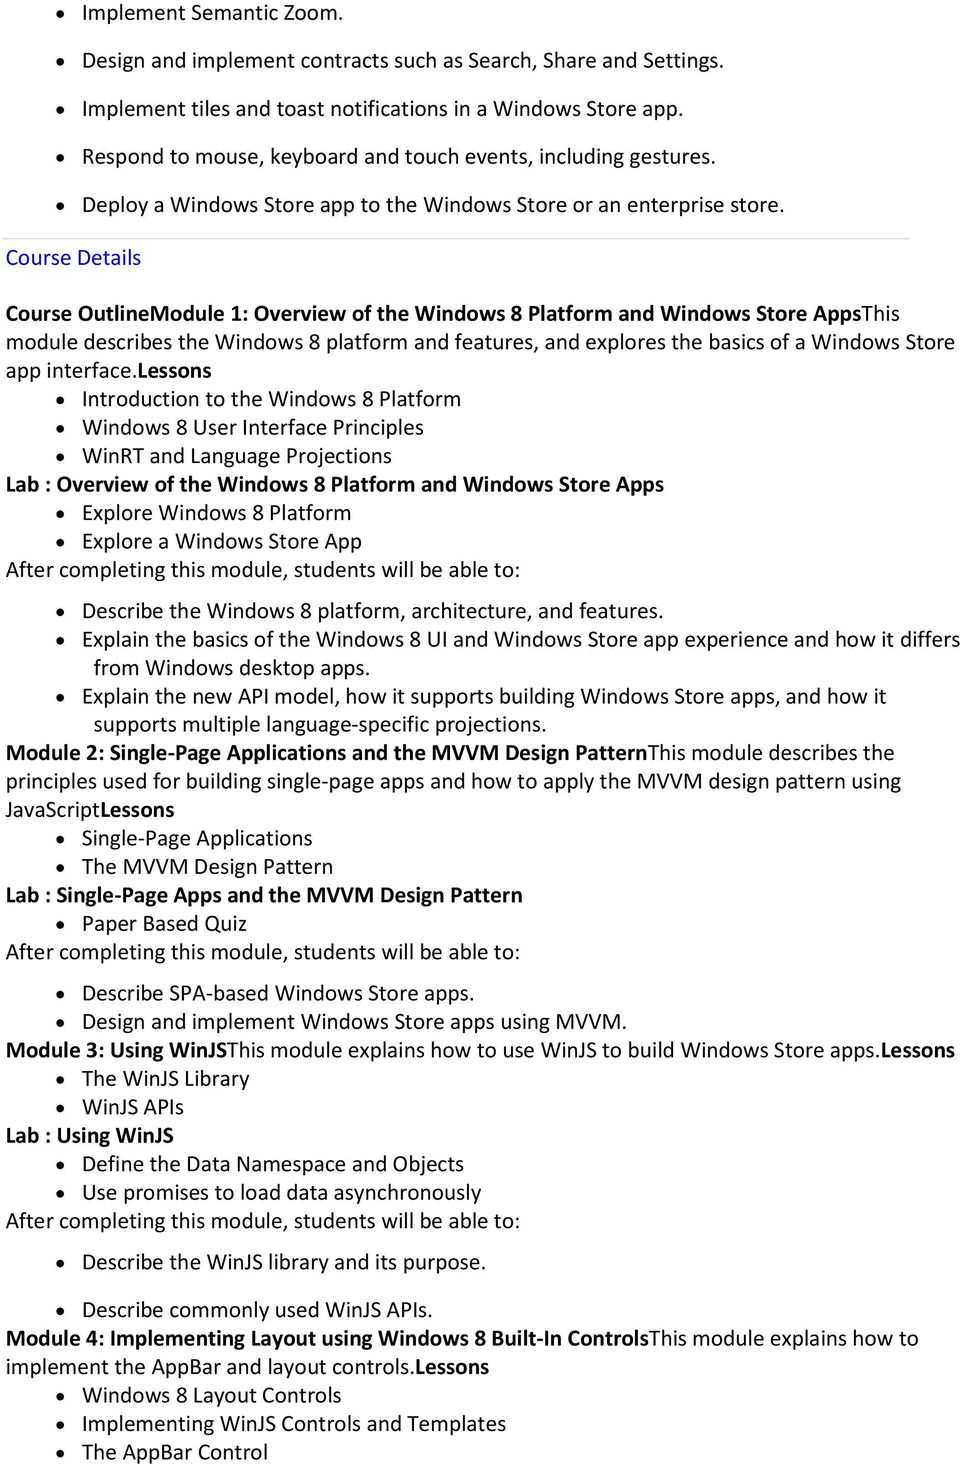 Course Details Course OutlineModule 1: Overview of the Windows 8 Platform and Windows Store AppsThis module describes the Windows 8 platform and features, and explores the basics of a Windows Store